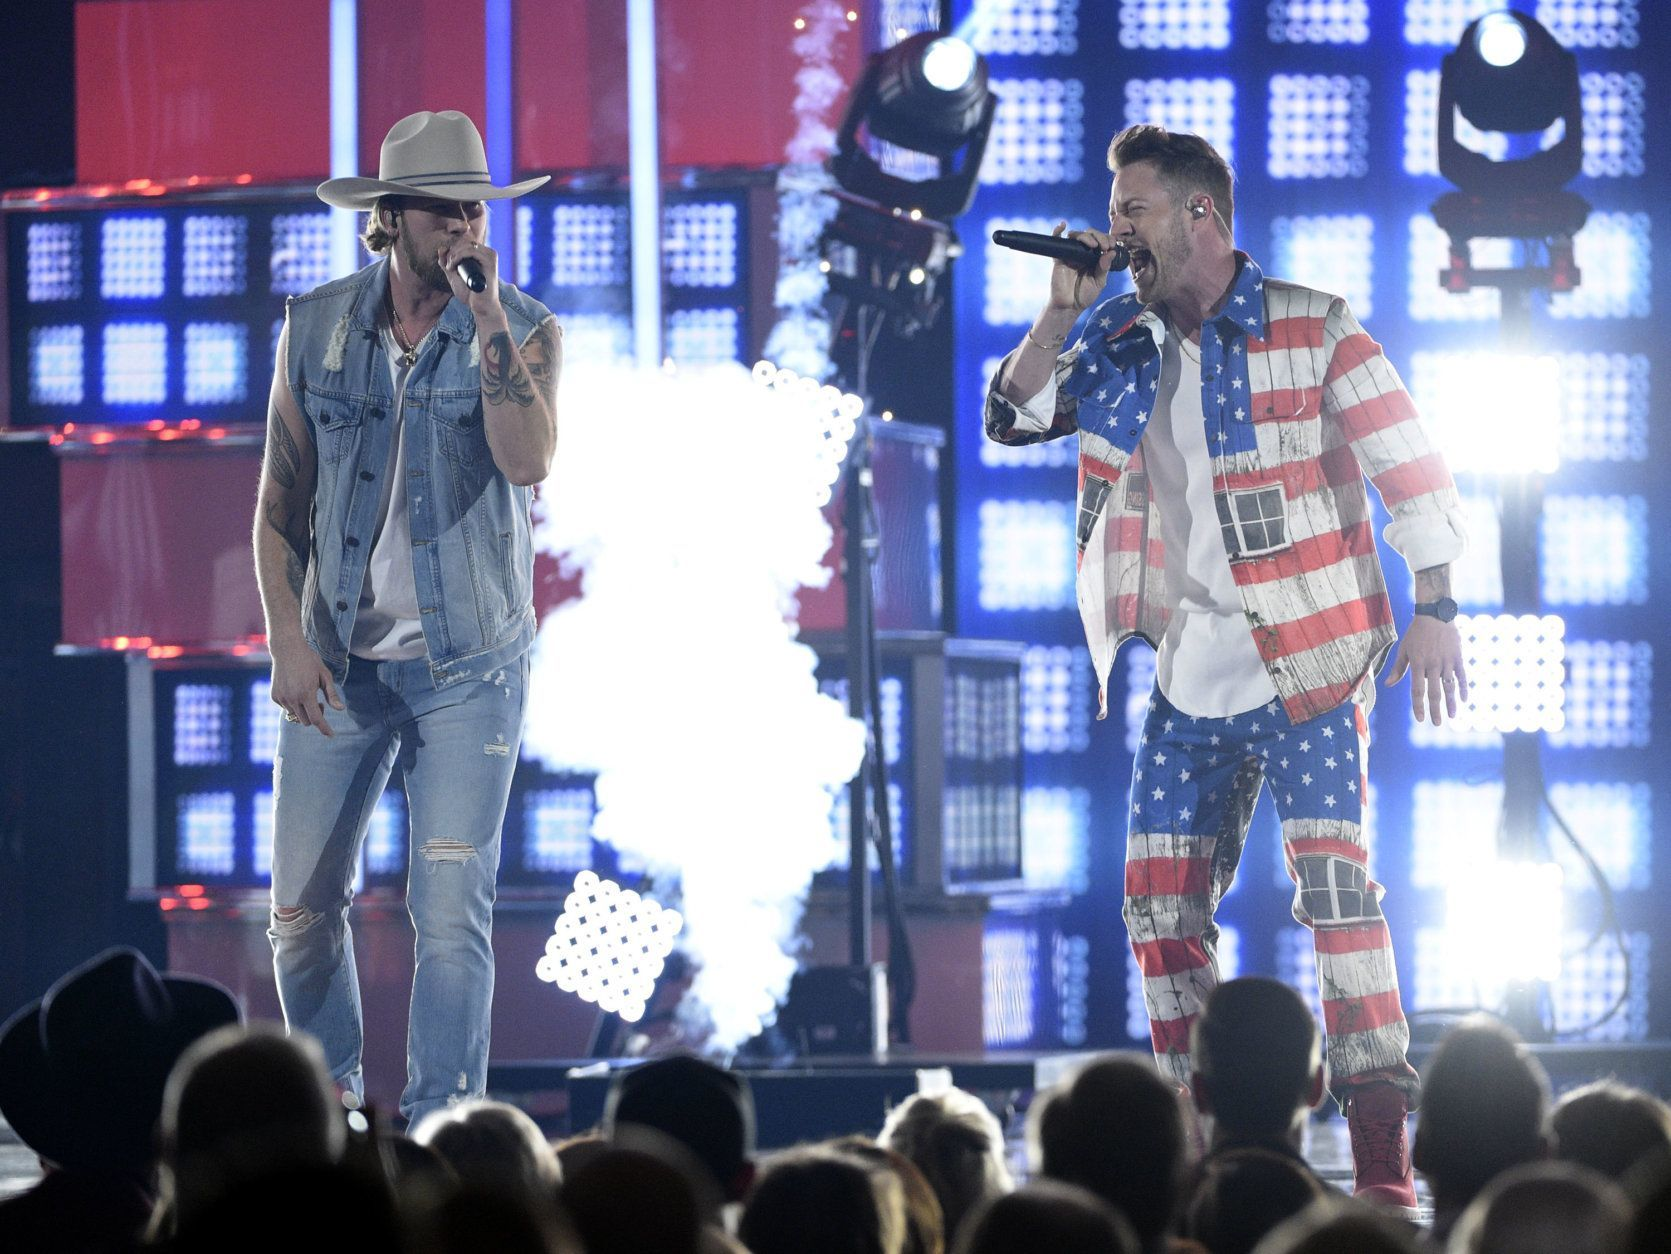 """Brian Kelley, left, and Tyler Hubbard, of Florida Georgia Line, perform """"Can't Hide Red"""" at the 54th annual Academy of Country Music Awards at the MGM Grand Garden Arena on Sunday, April 7, 2019, in Las Vegas. (Photo by Chris Pizzello/Invision/AP)"""